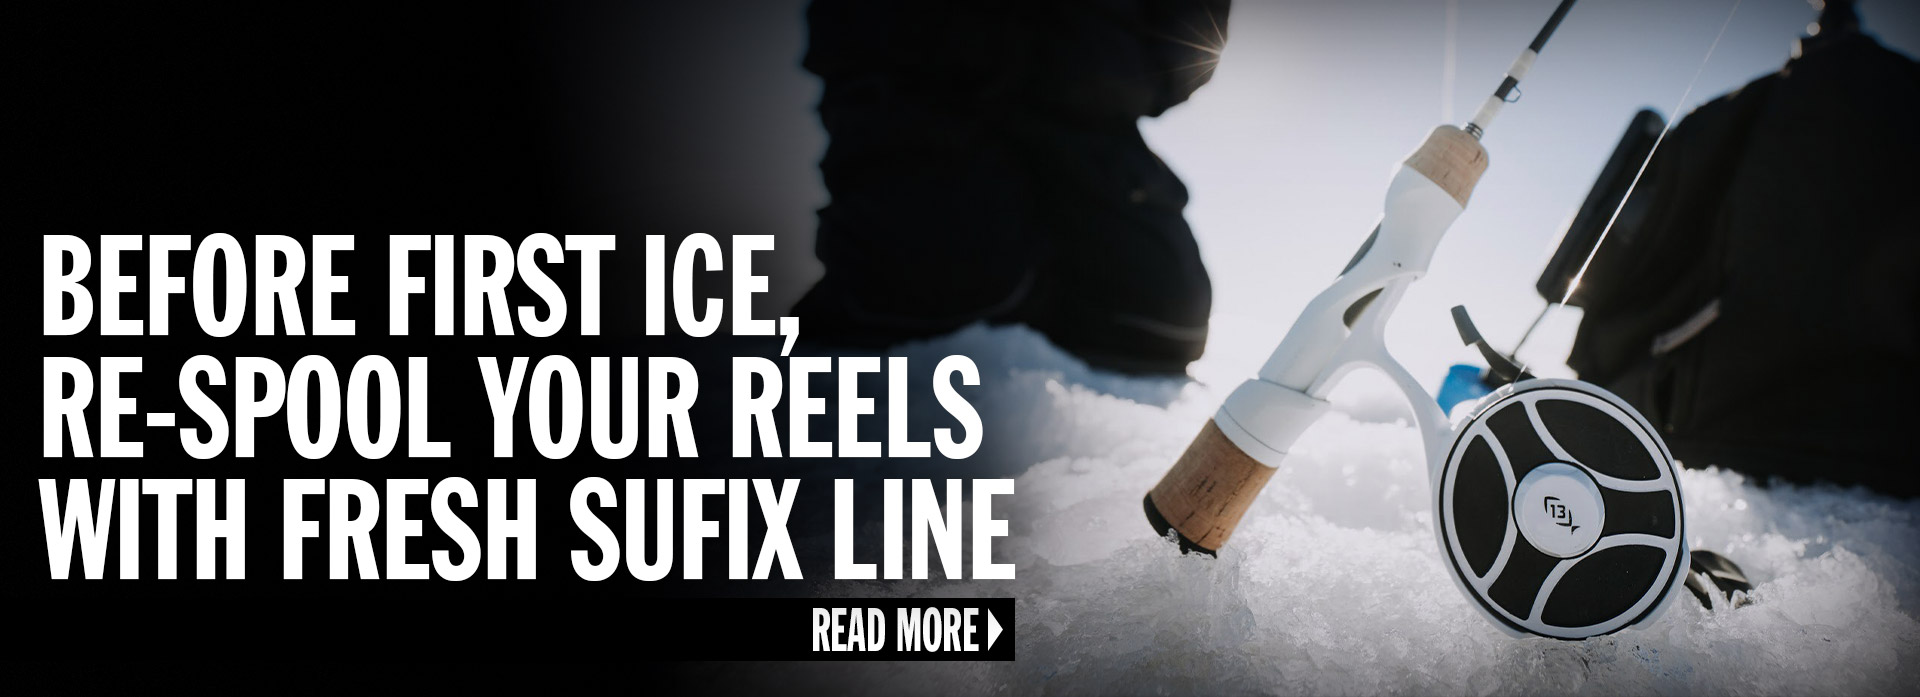 Before First Ice, Re-Spool Your Reels With Fresh Sufix Line